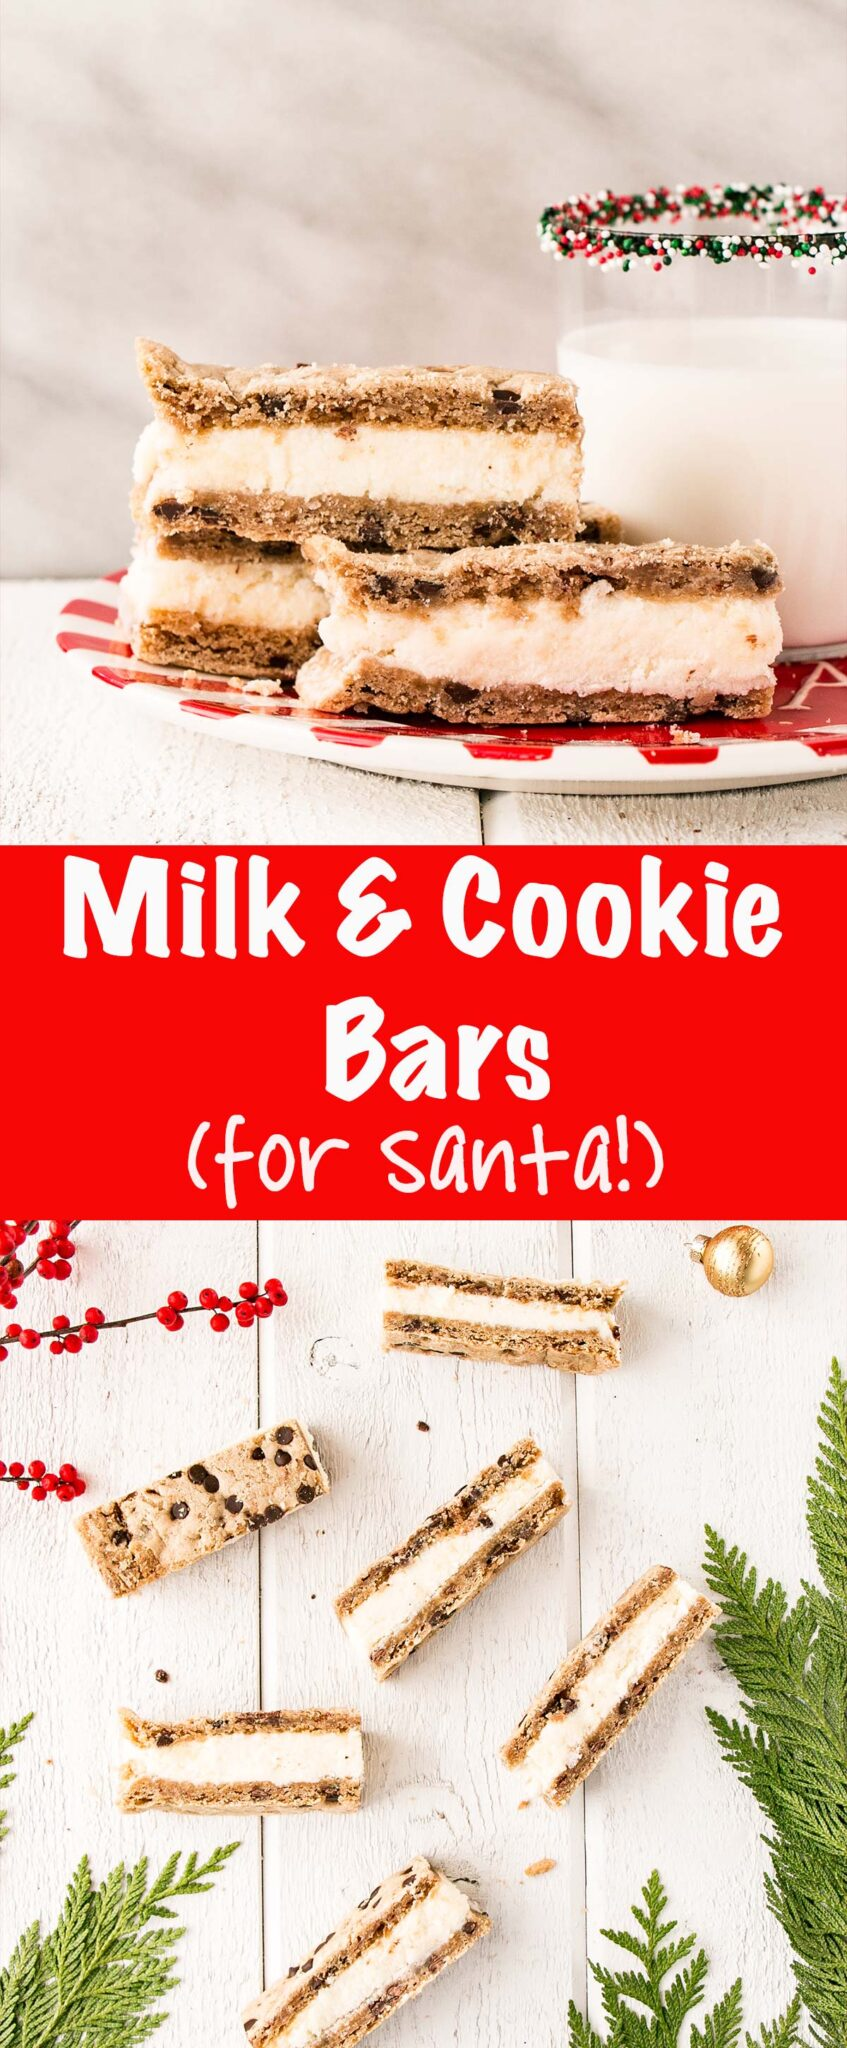 Milk and Cookie Bars (for Santa!) are easy to whip up and set a tradition on Christmas Eve. #ad #qualitymilk #christmas #milkandcookies